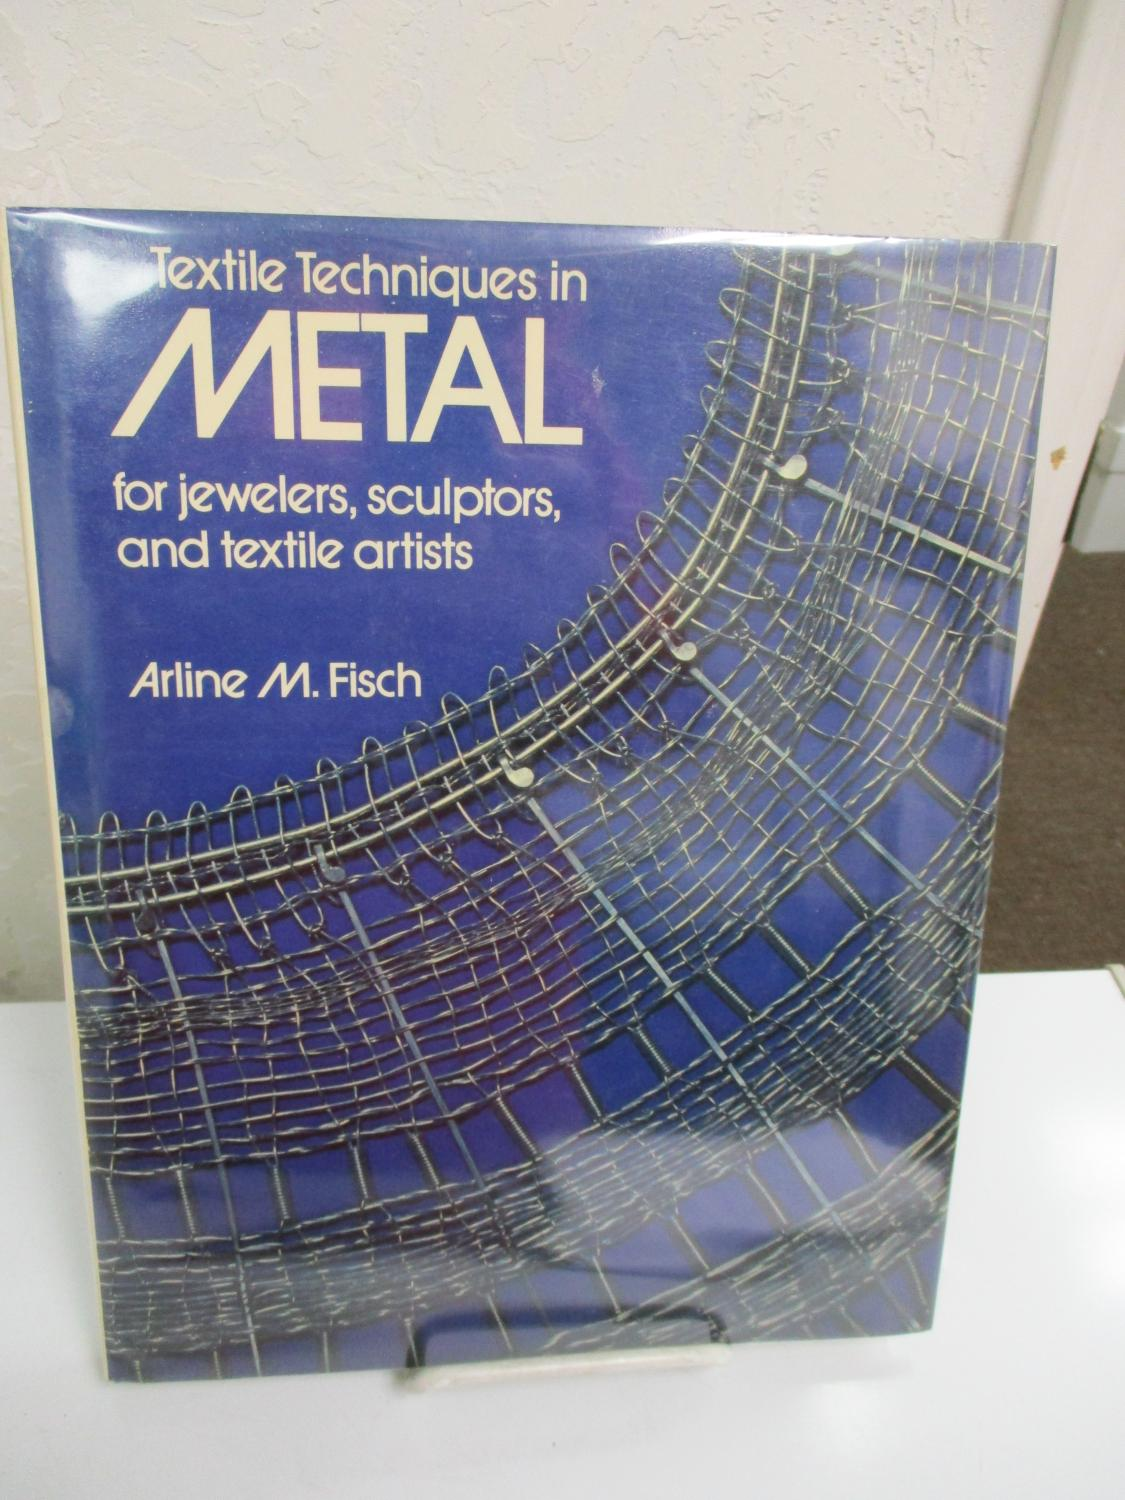 Textile Techniques in Metal for Jewelers